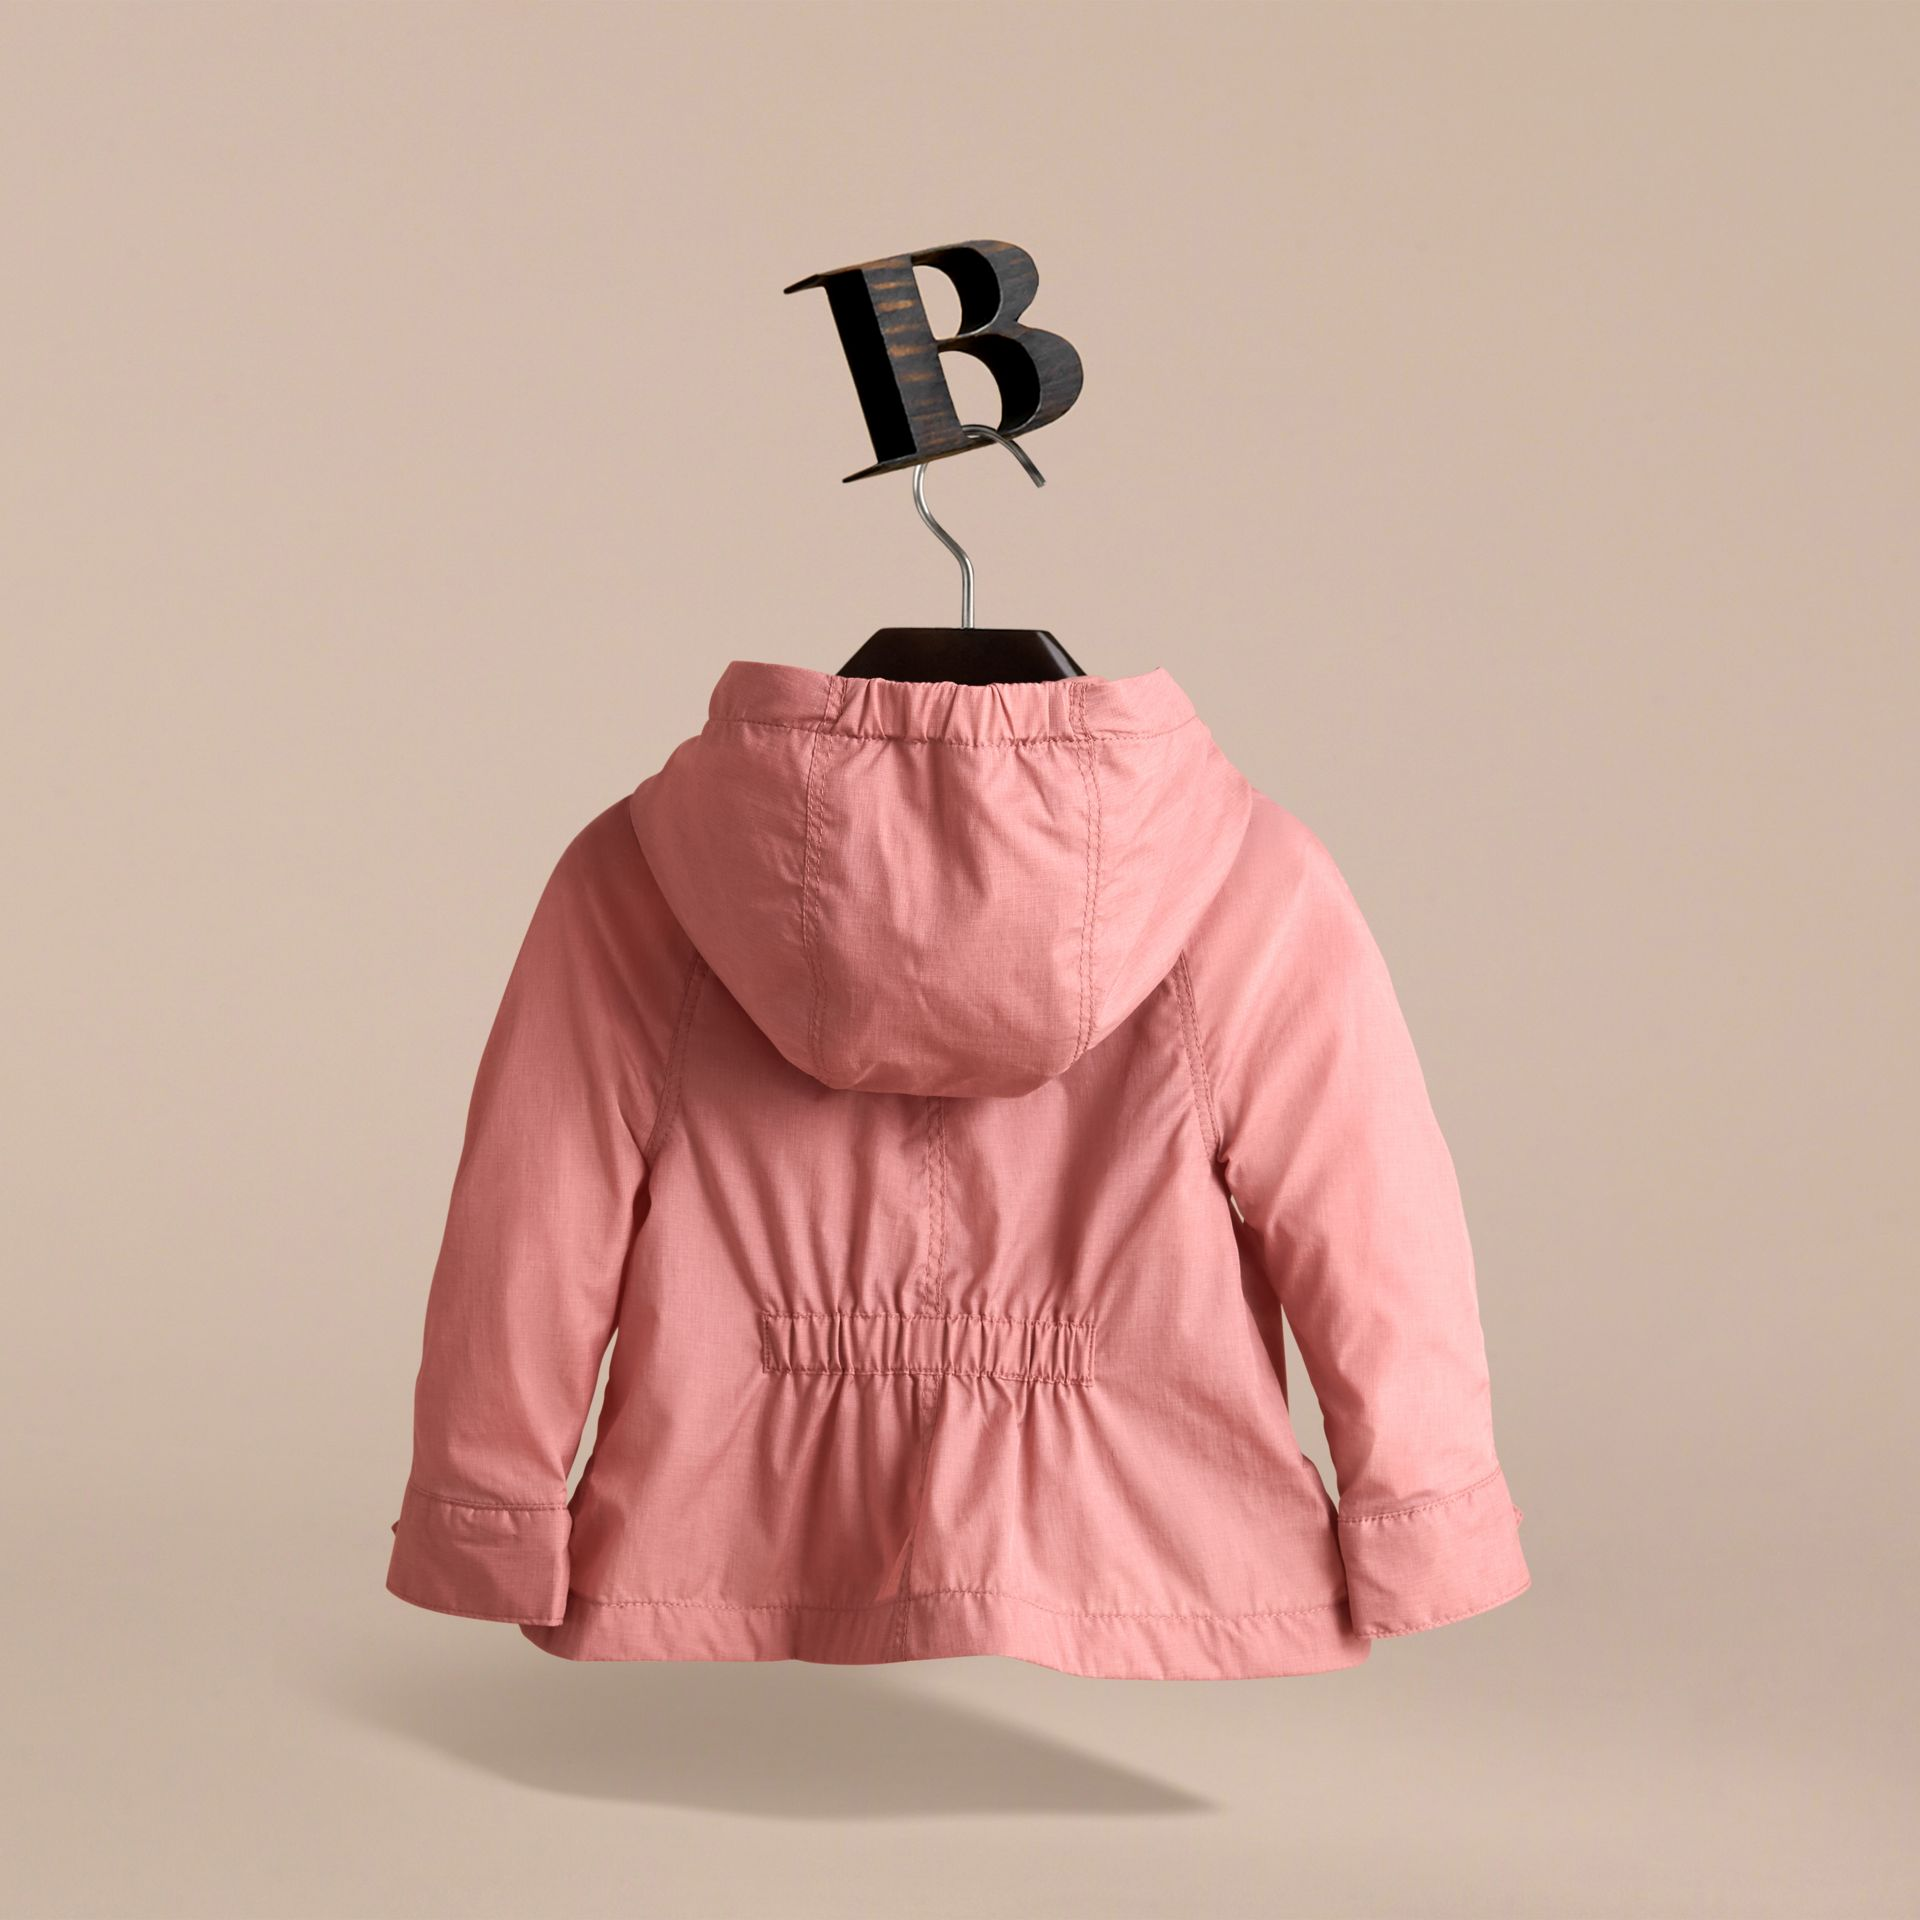 Showerproof Hooded Jacket in Rose Pink | Burberry - gallery image 4